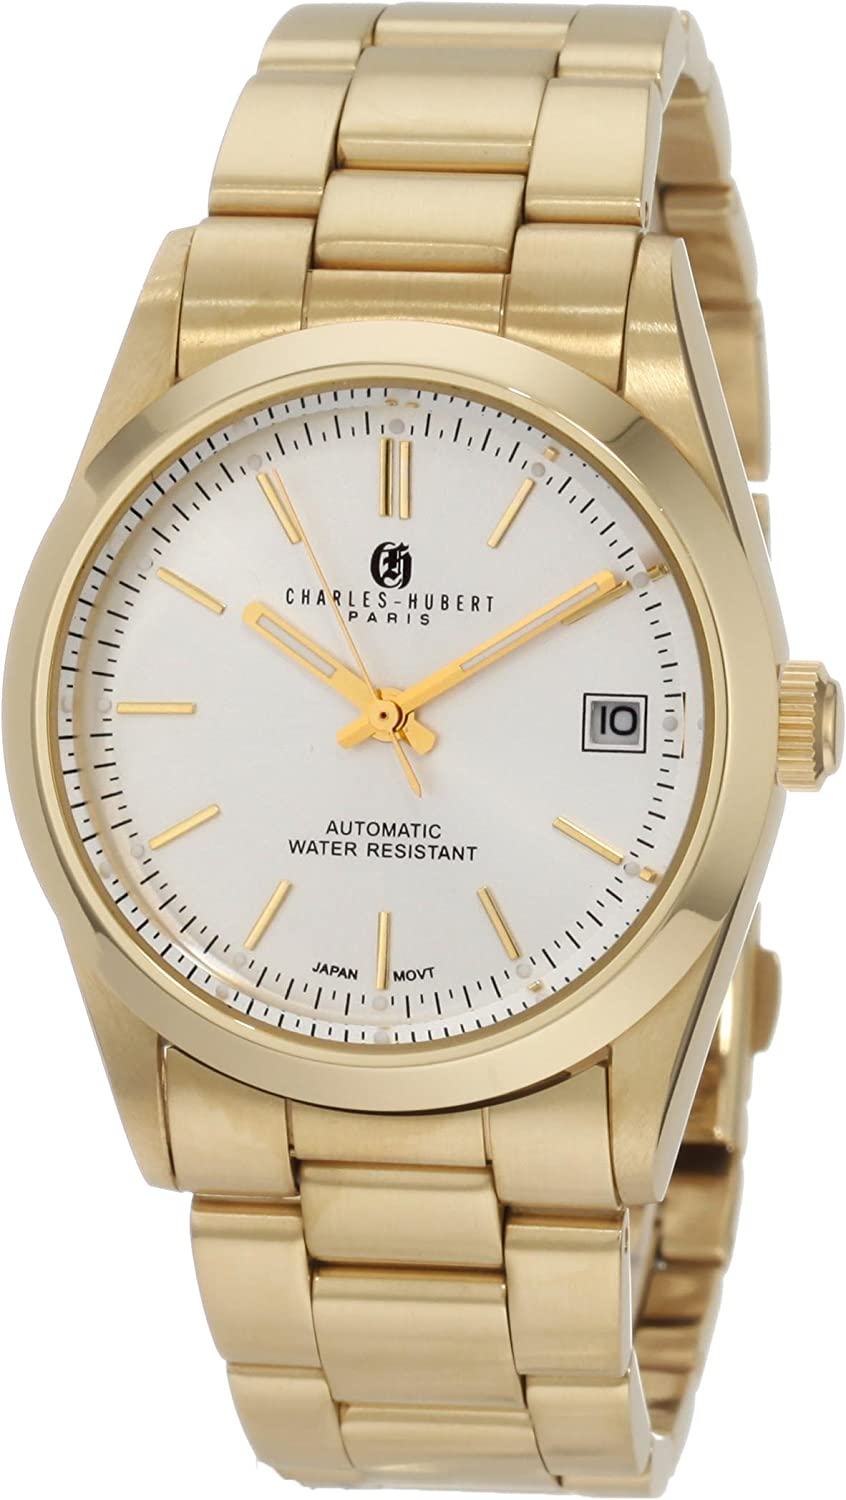 Charles-Hubert, Paris Men s 3826 Premium Collection Gold-Plated Stainless Steel Automatic Watch